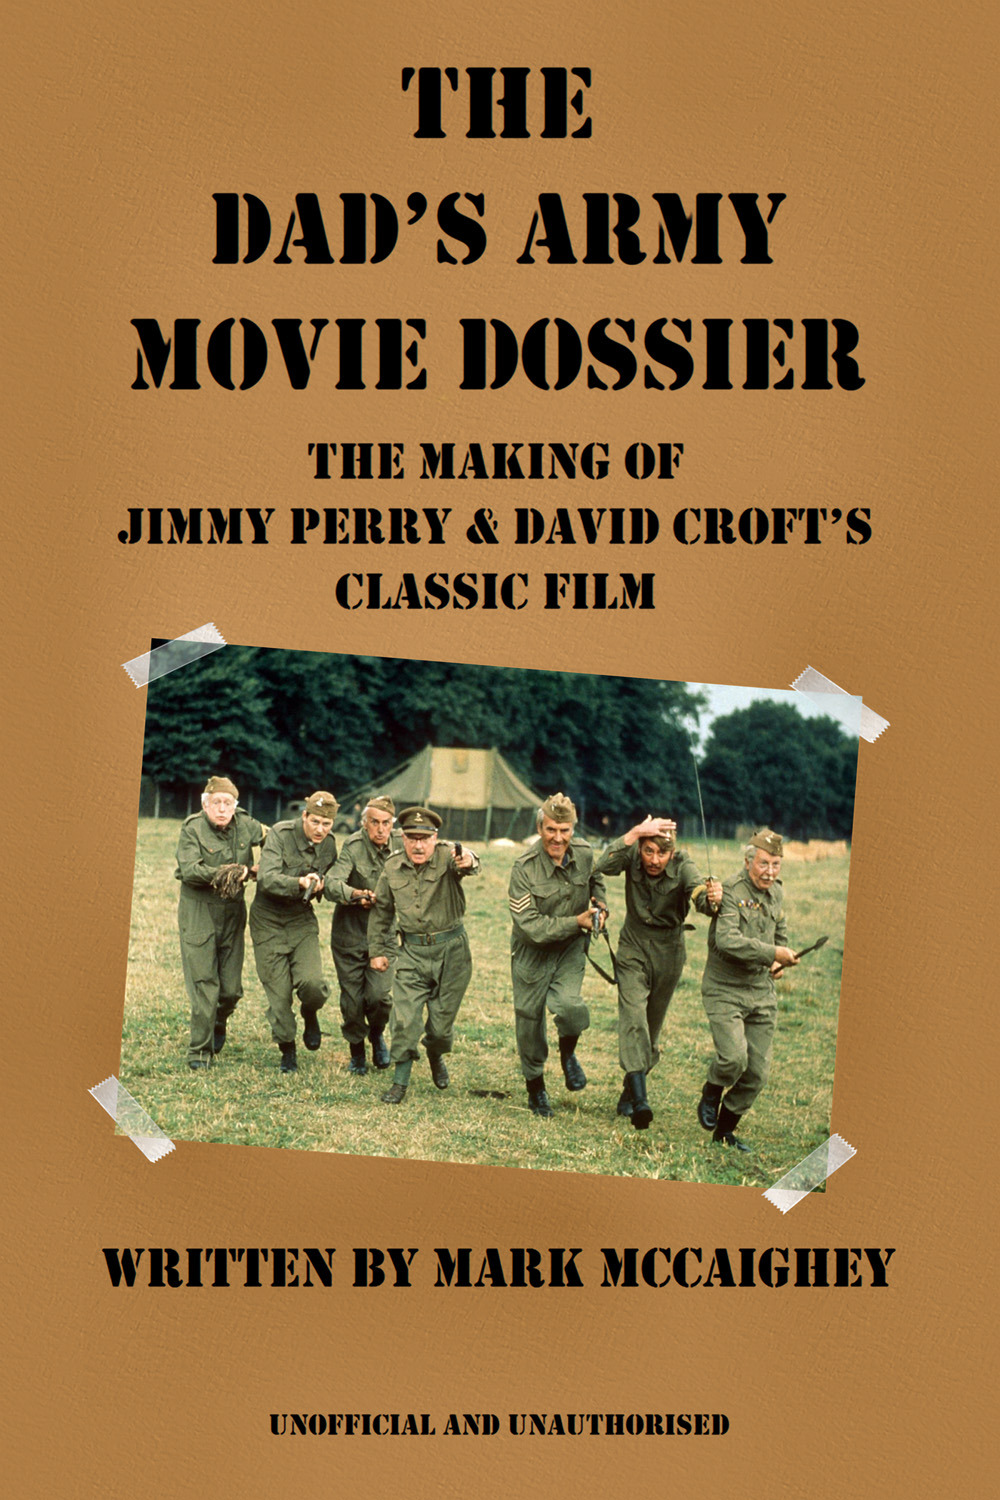 McCaighey, Mark - The Dad's Army Movie Dossier, ebook